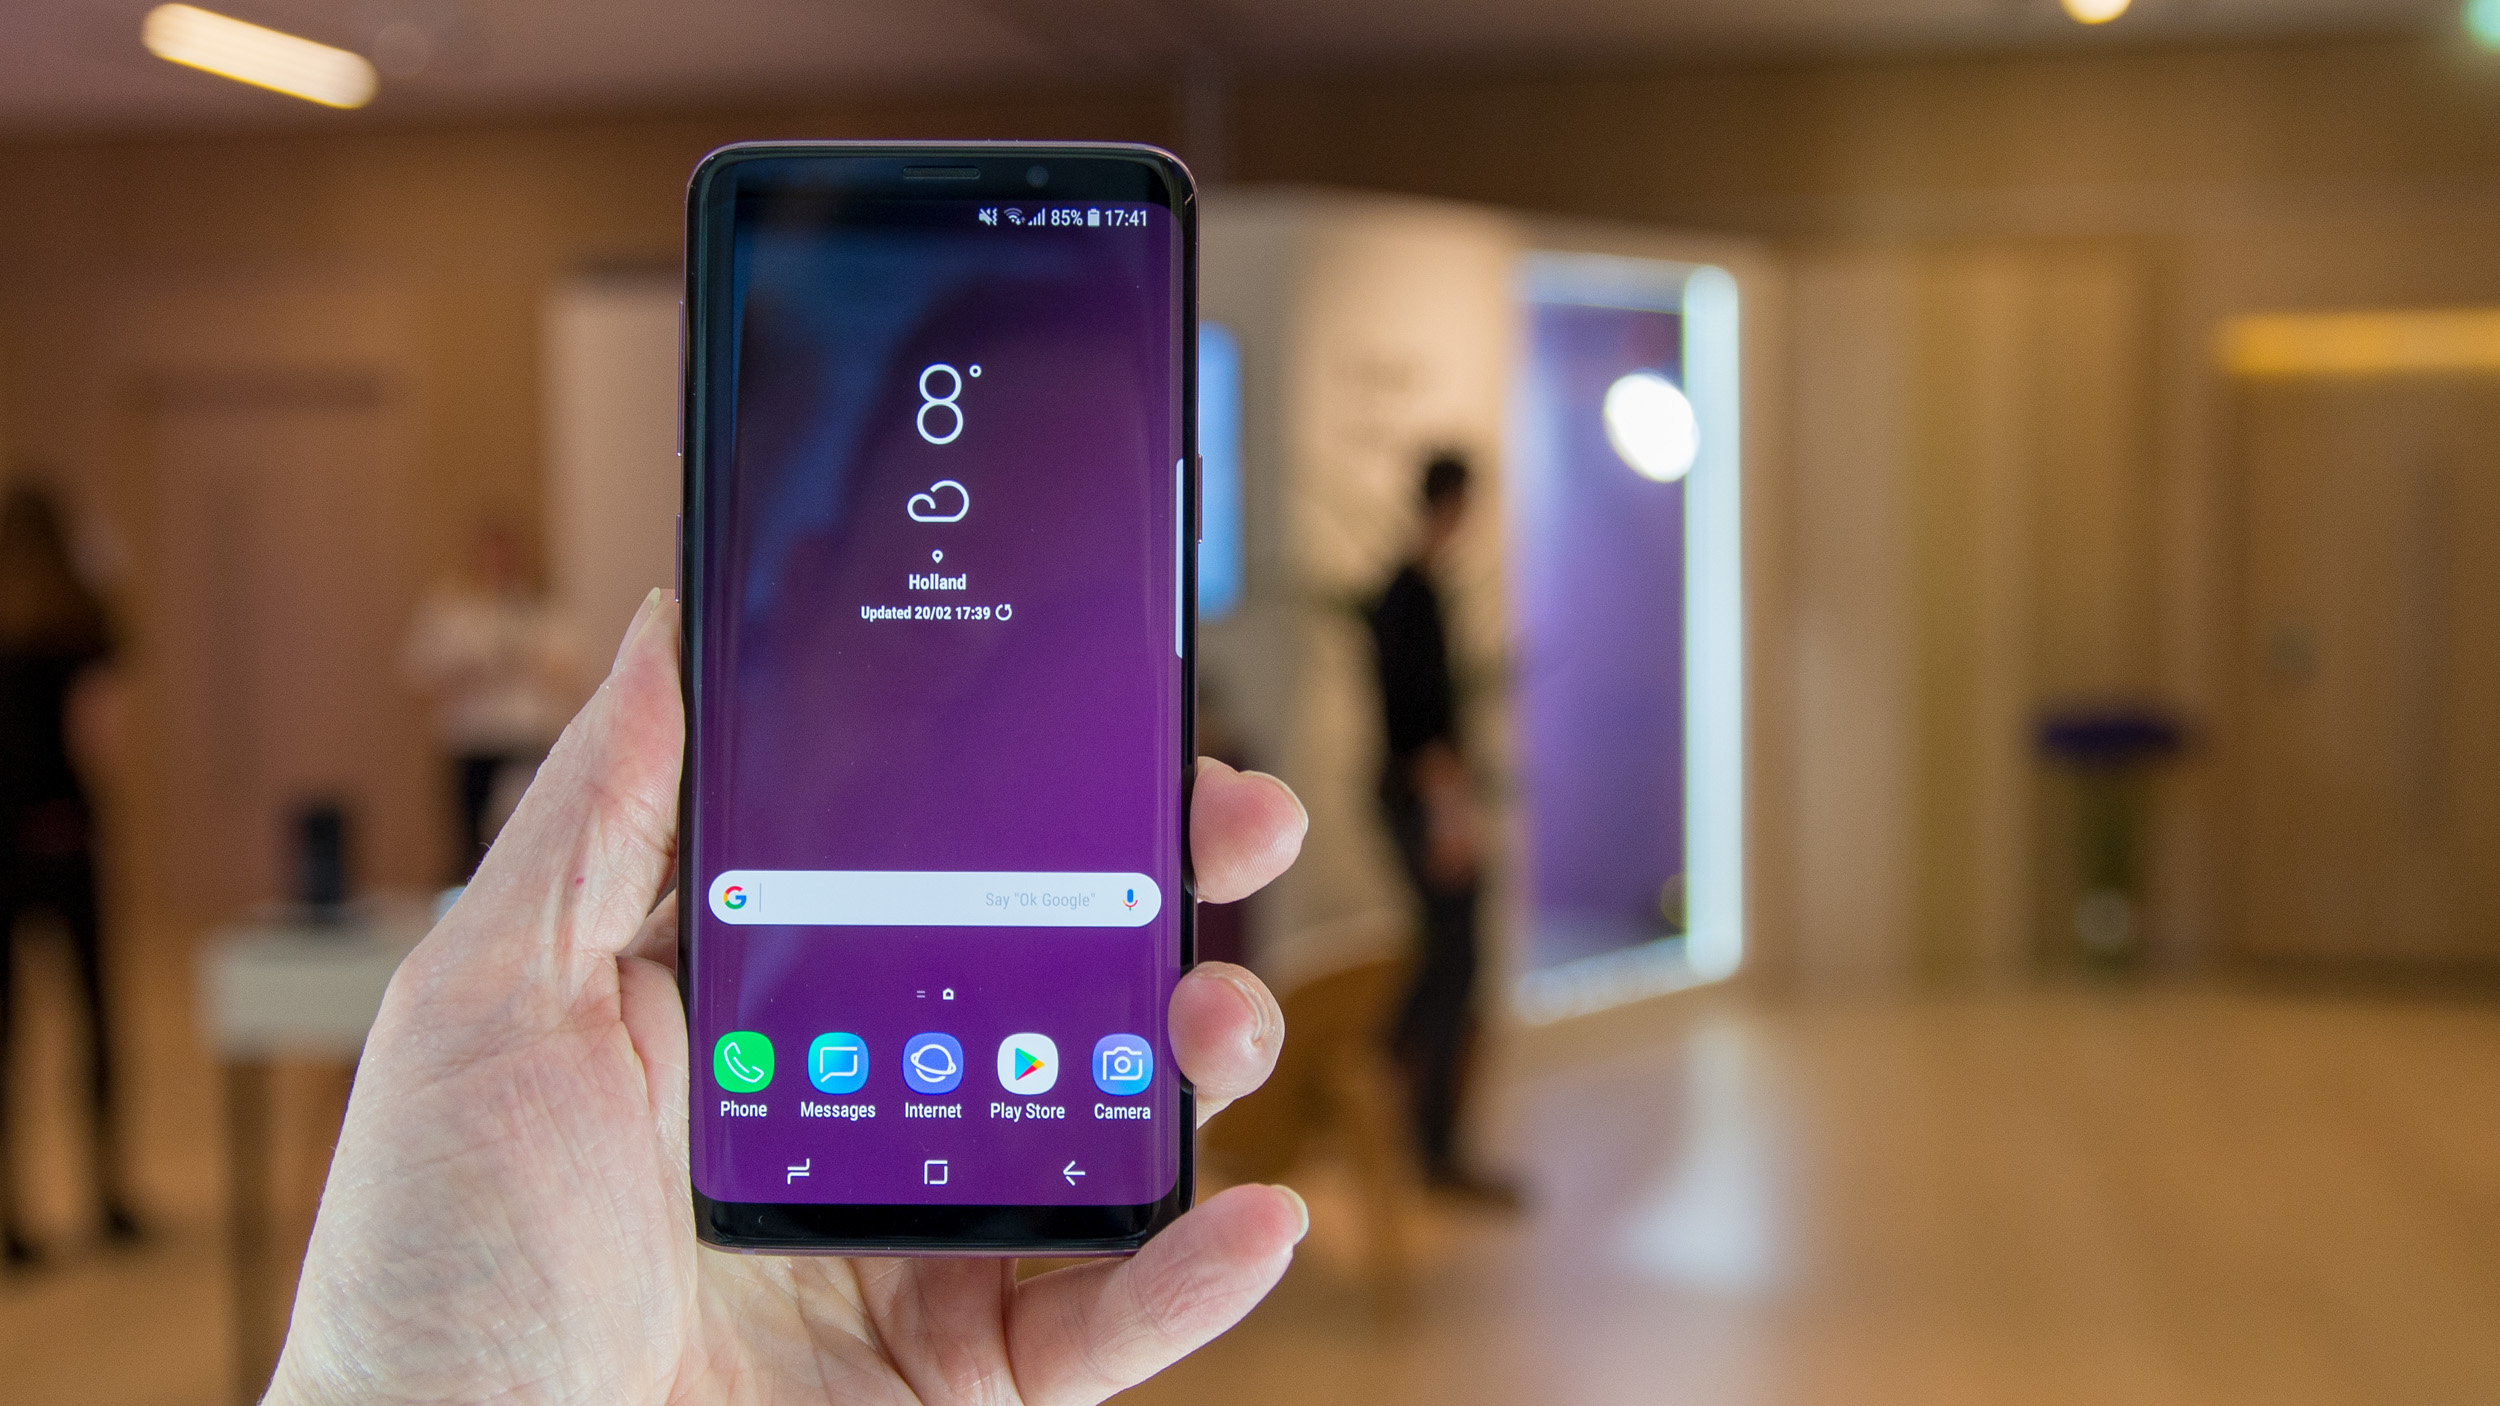 Samsung Galaxy S9 Deals How To Get The Best Galaxy S9 And S9 Plus Price In The Uk